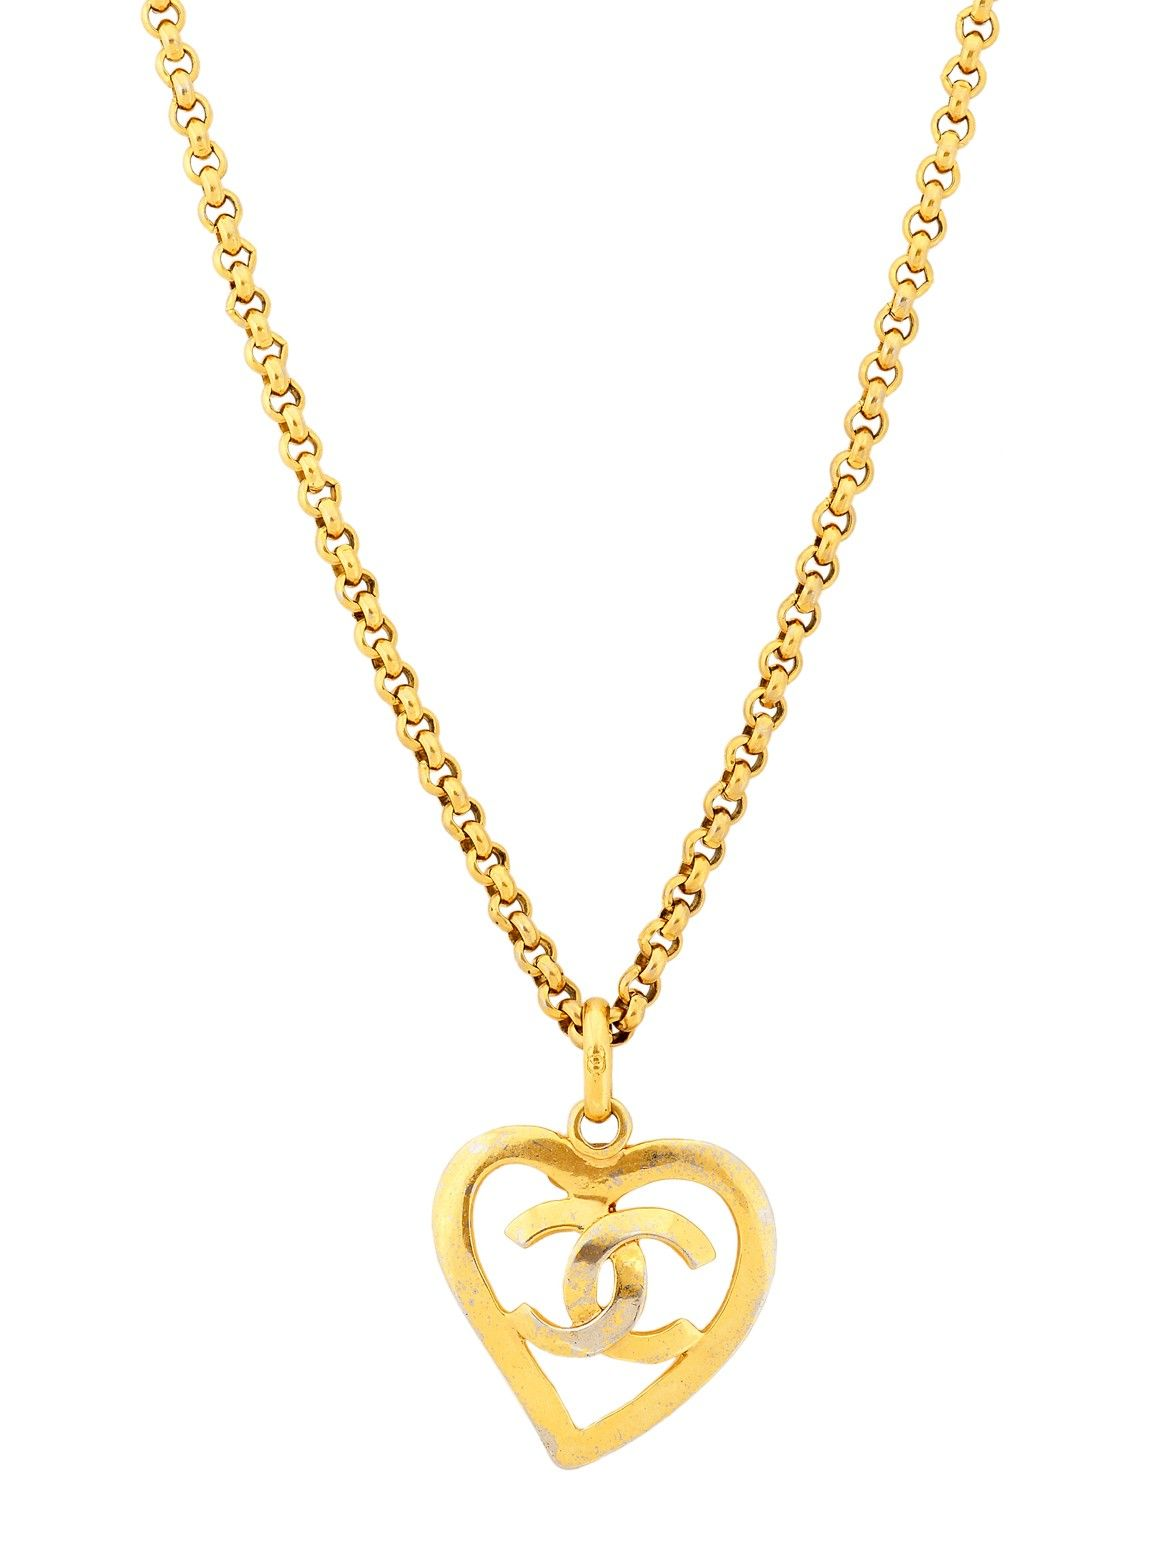 Vintage chanel logo open heart pendant necklace at london jewelers vintage chanel logo open heart pendant necklace at london jewelers aloadofball Image collections